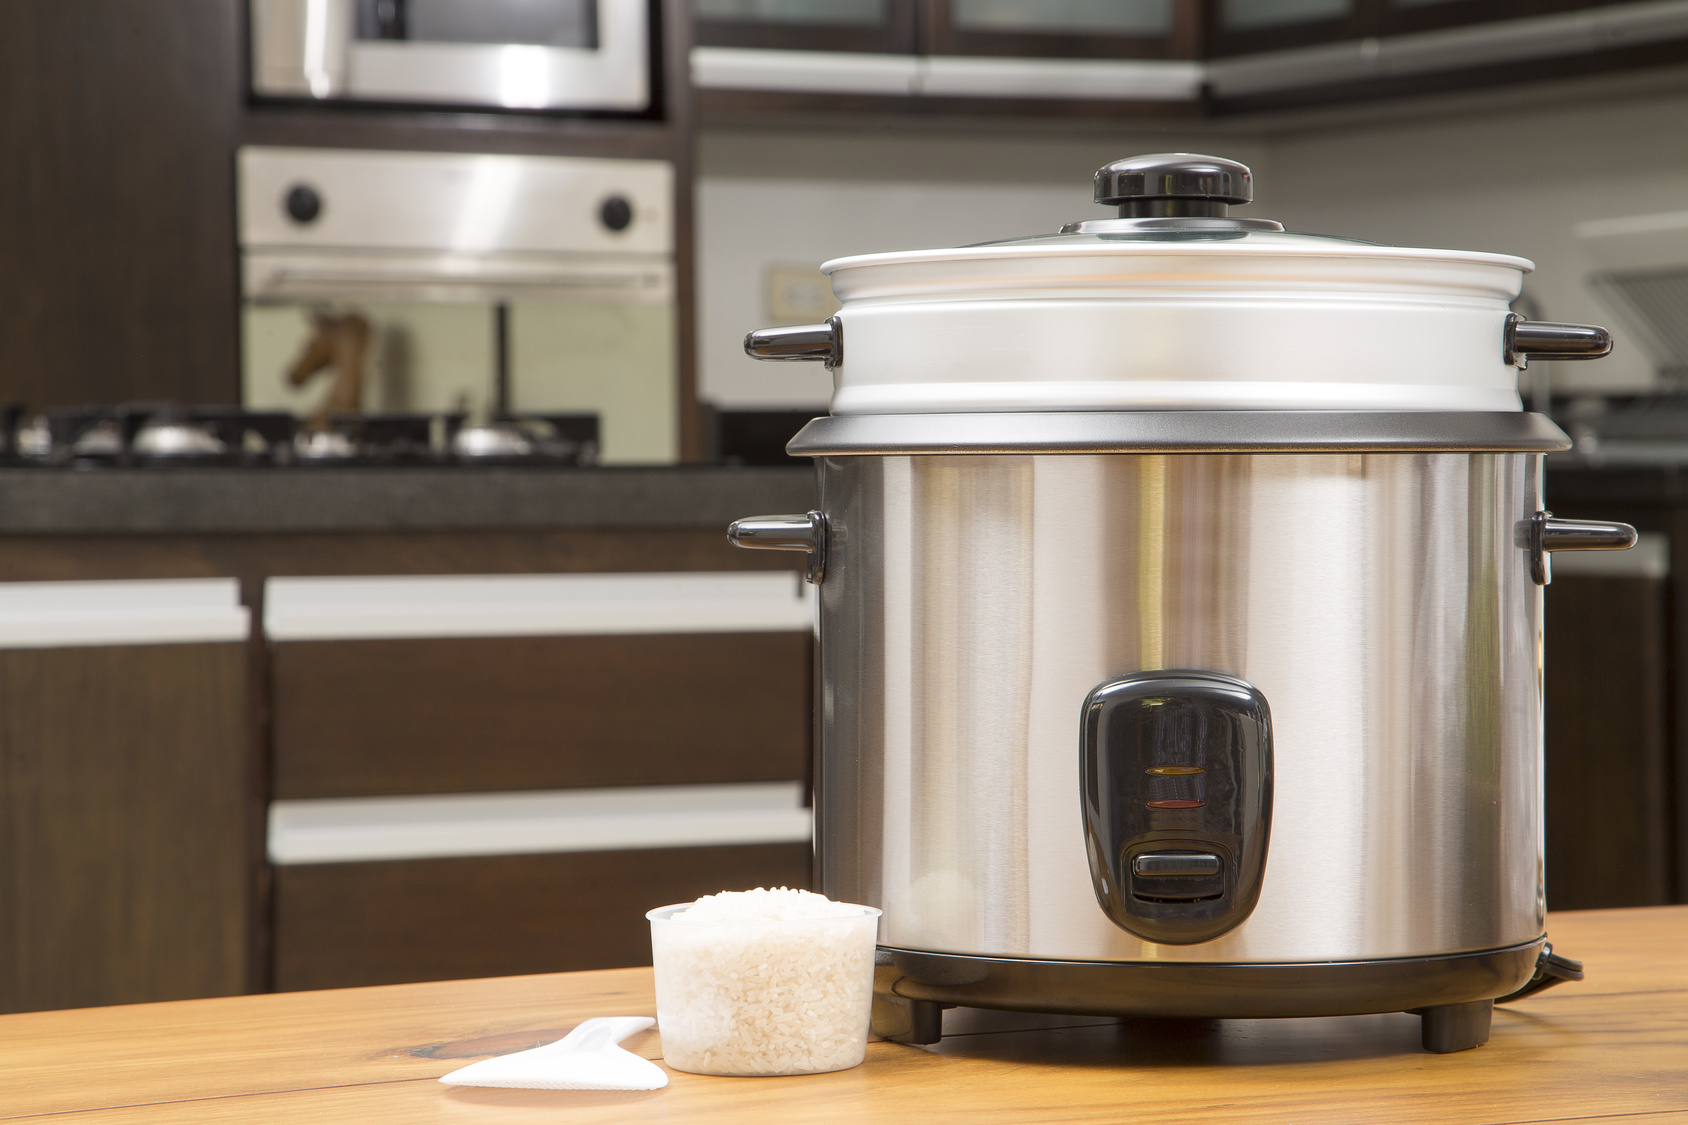 The Best Rice Cookers In 2019 - Guide, Reviews, And Tips